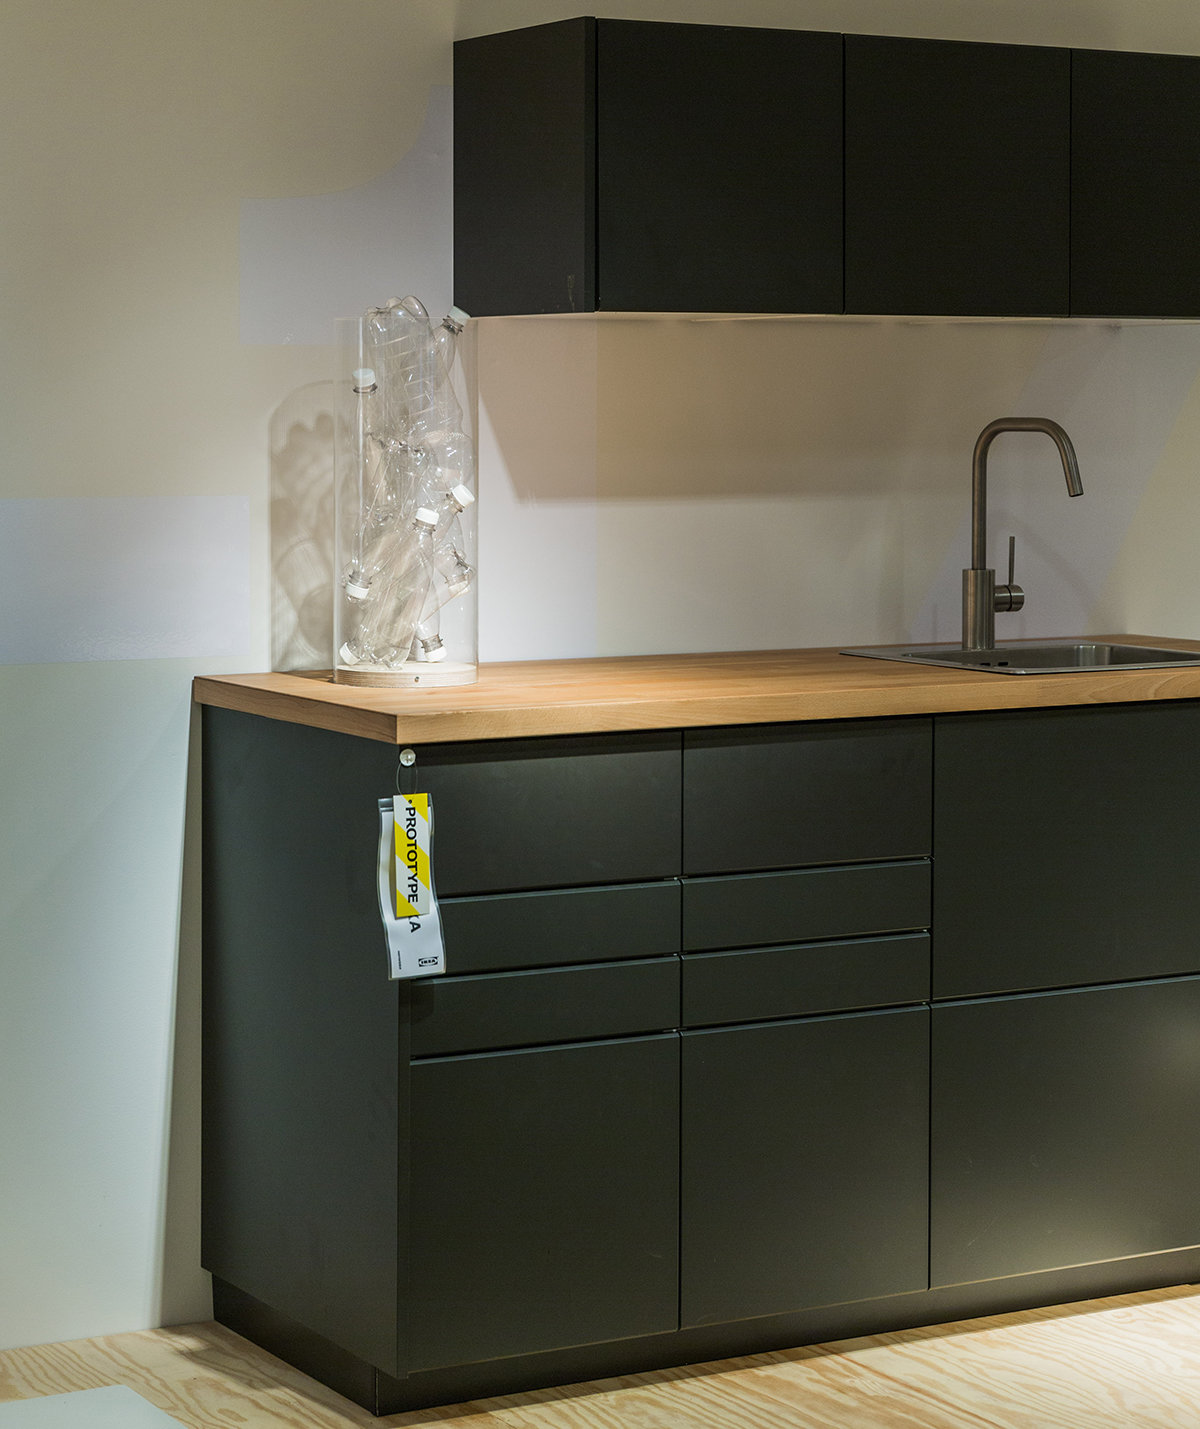 Ikea Kitchen Cupboards: Ikea Is Turning Recycled Bottles Into Kitchen Cabinets